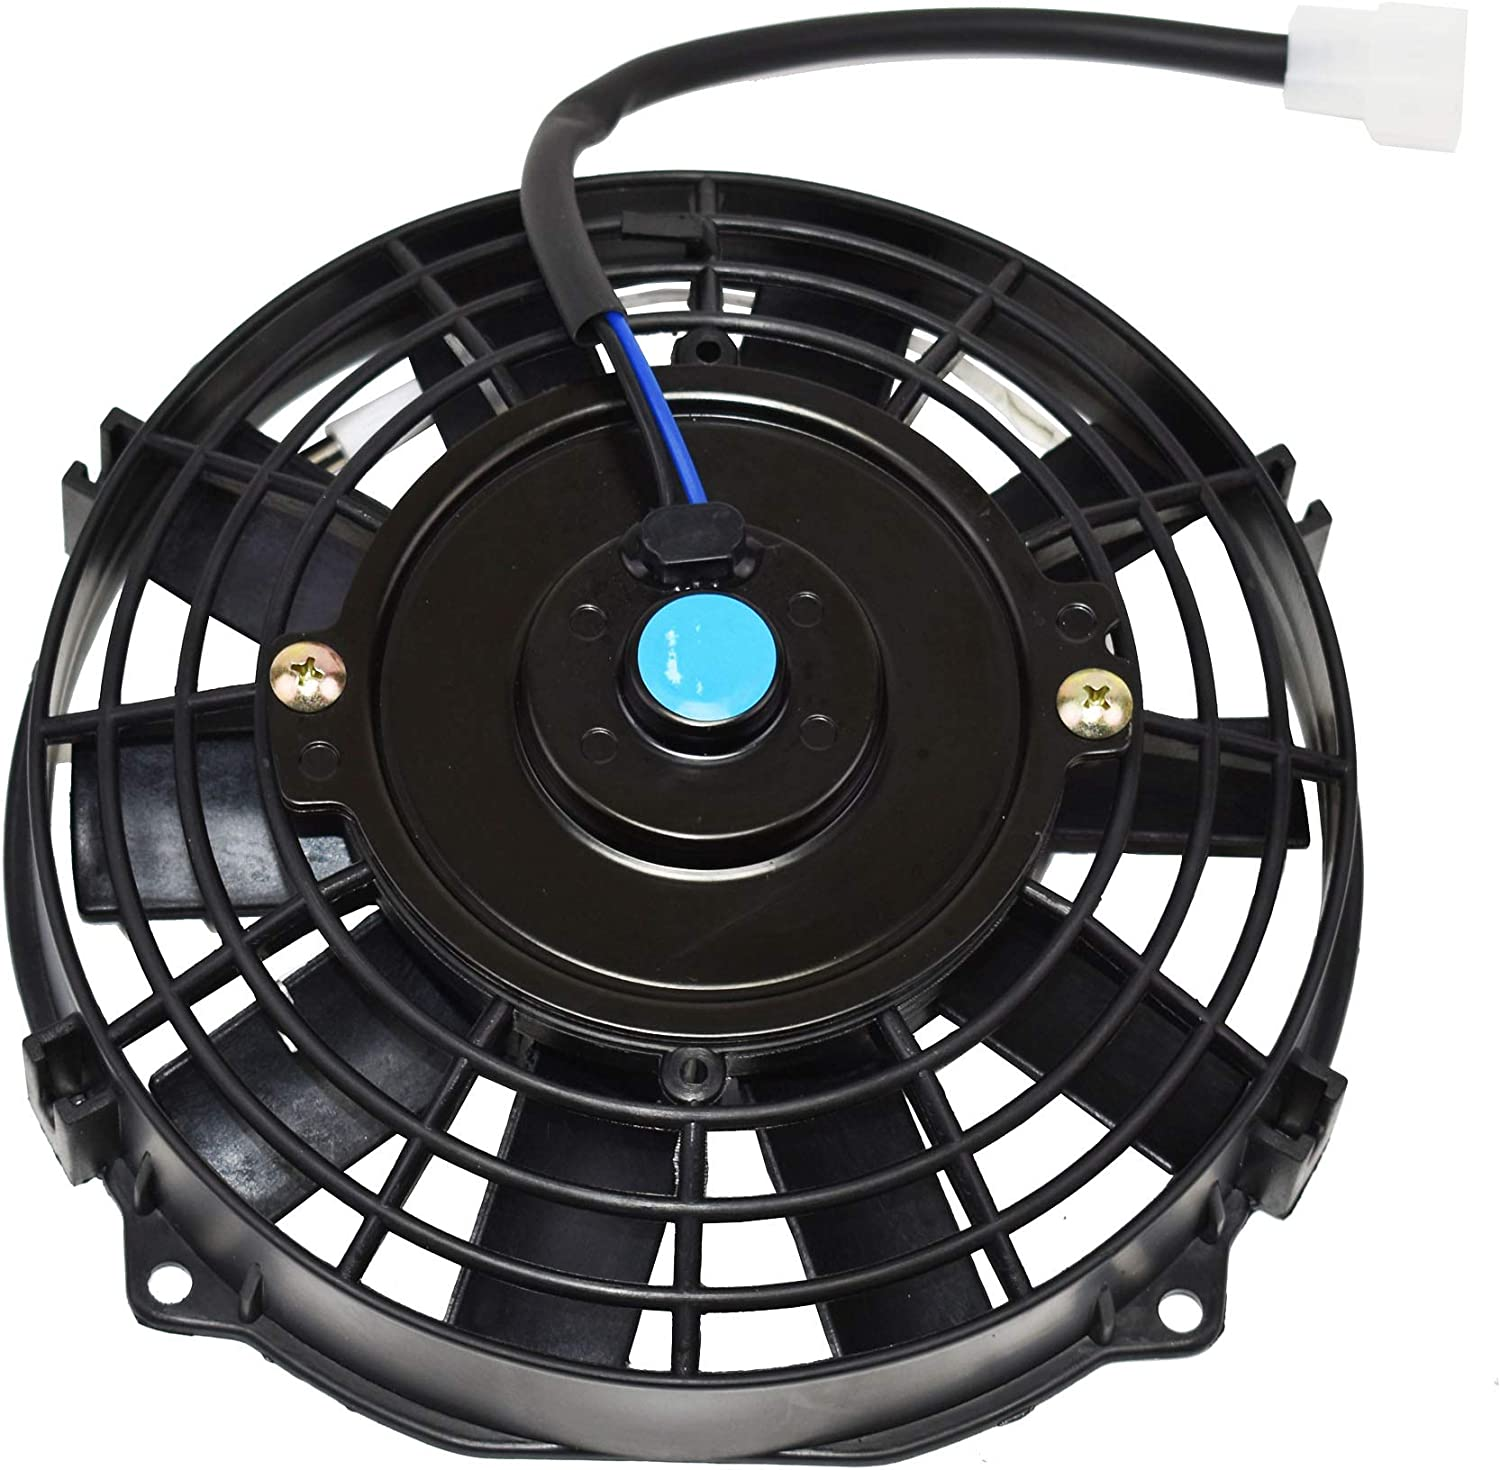 A-Team Performance 120021 Electric Radiator Fan 8inch High Performance Cooling Fan 1700 CFM 12V Reversible 10 Blades Black